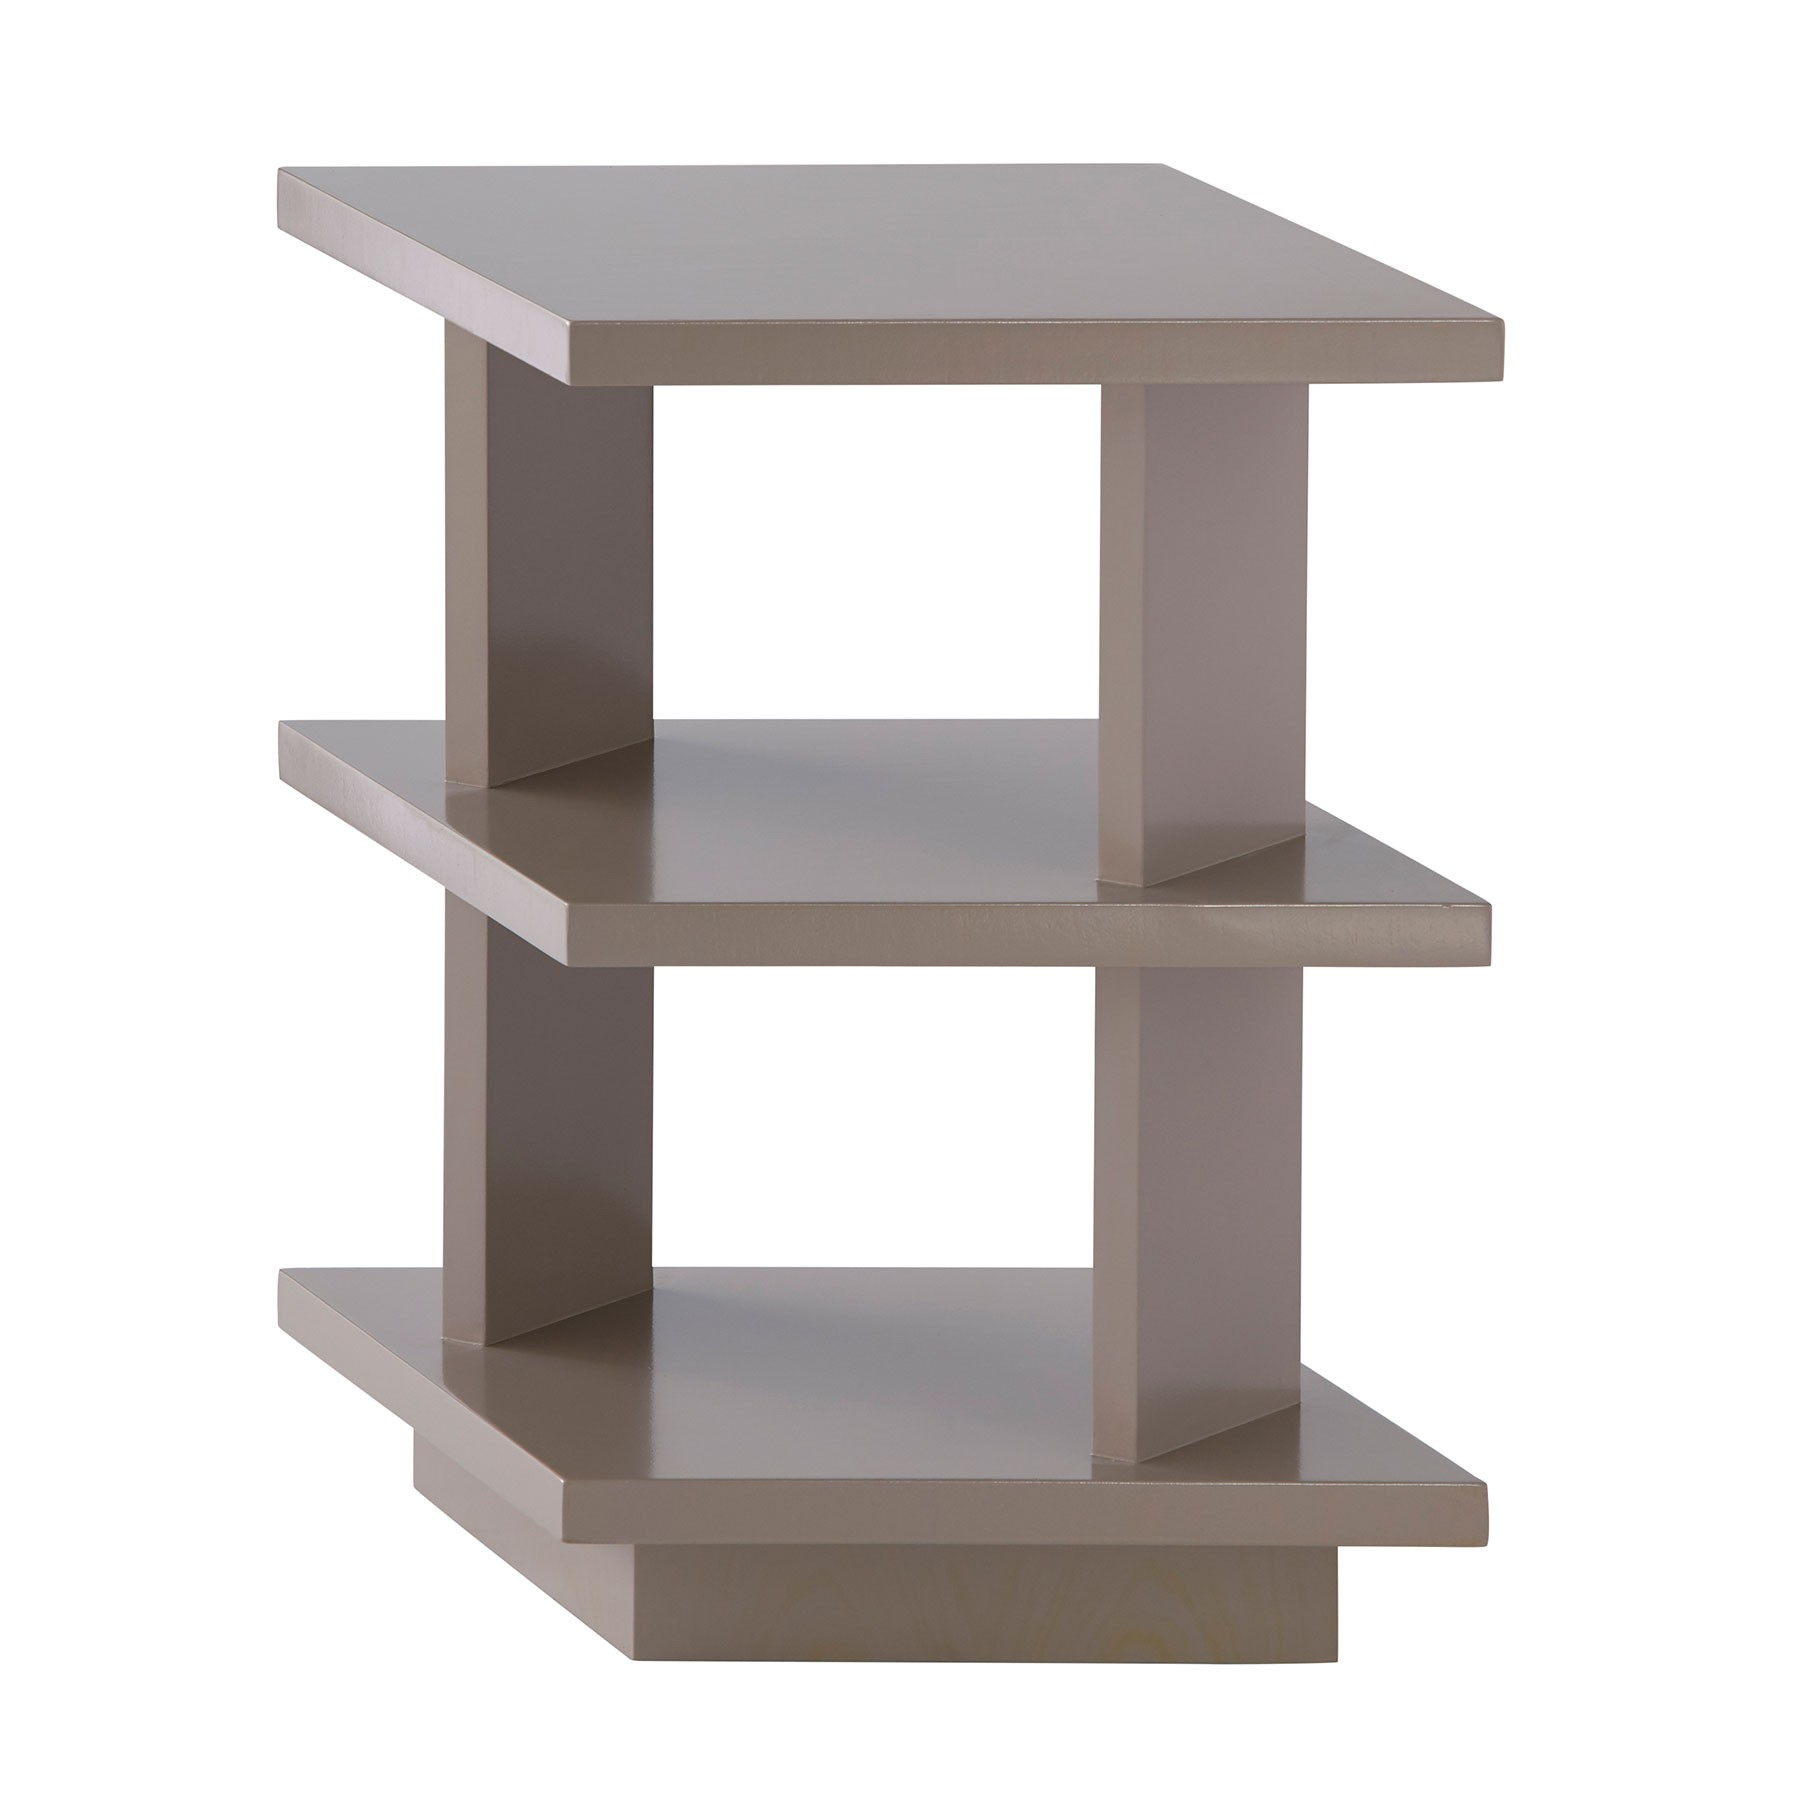 rigby accent table shelf custom theodore alexander with solid wood coffee and end tables argos bedroom furniture corner storage chest pier mirrored target living room patio decor